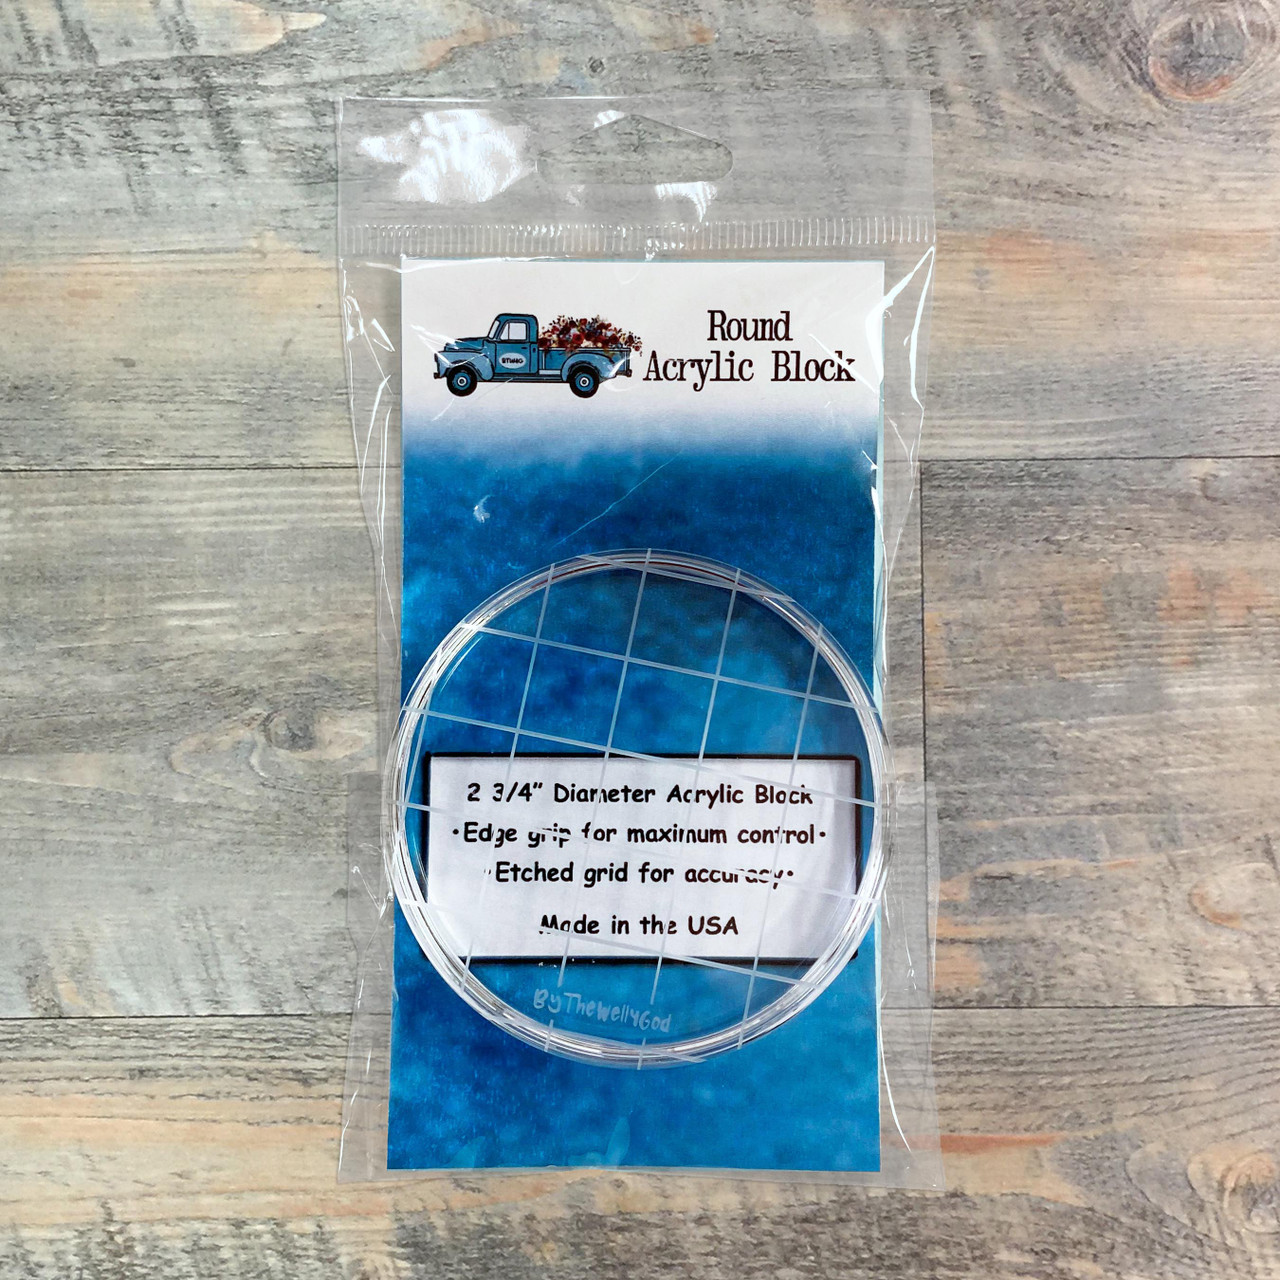 BTW4G Round Acrylic Stamping Block - 2.75-inch Round with Etched Grid & Edge Grip